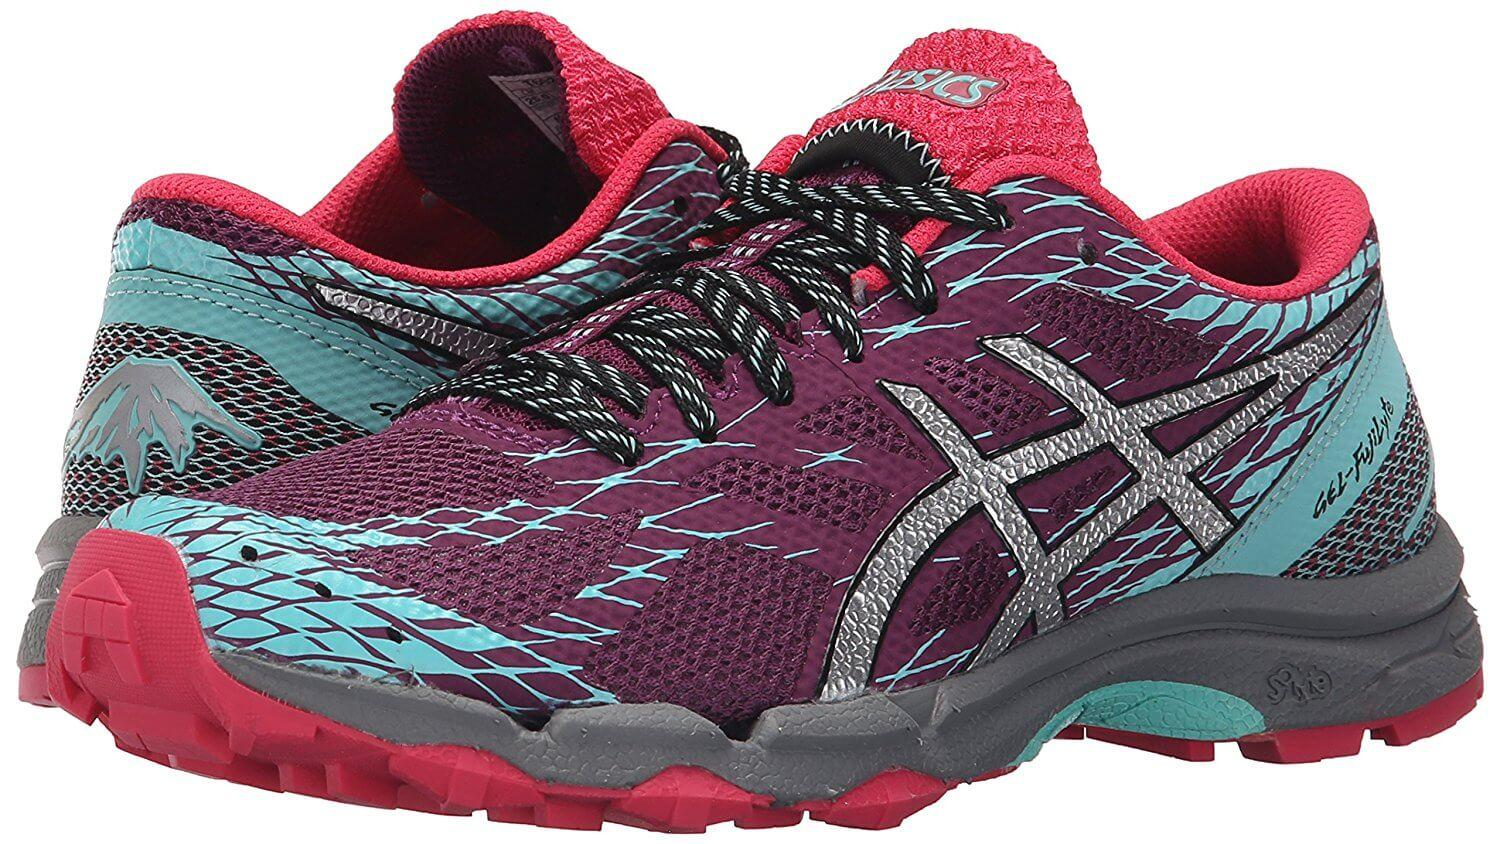 Pair Of Asics Gel Fujilyte with bright colors and streamlined design